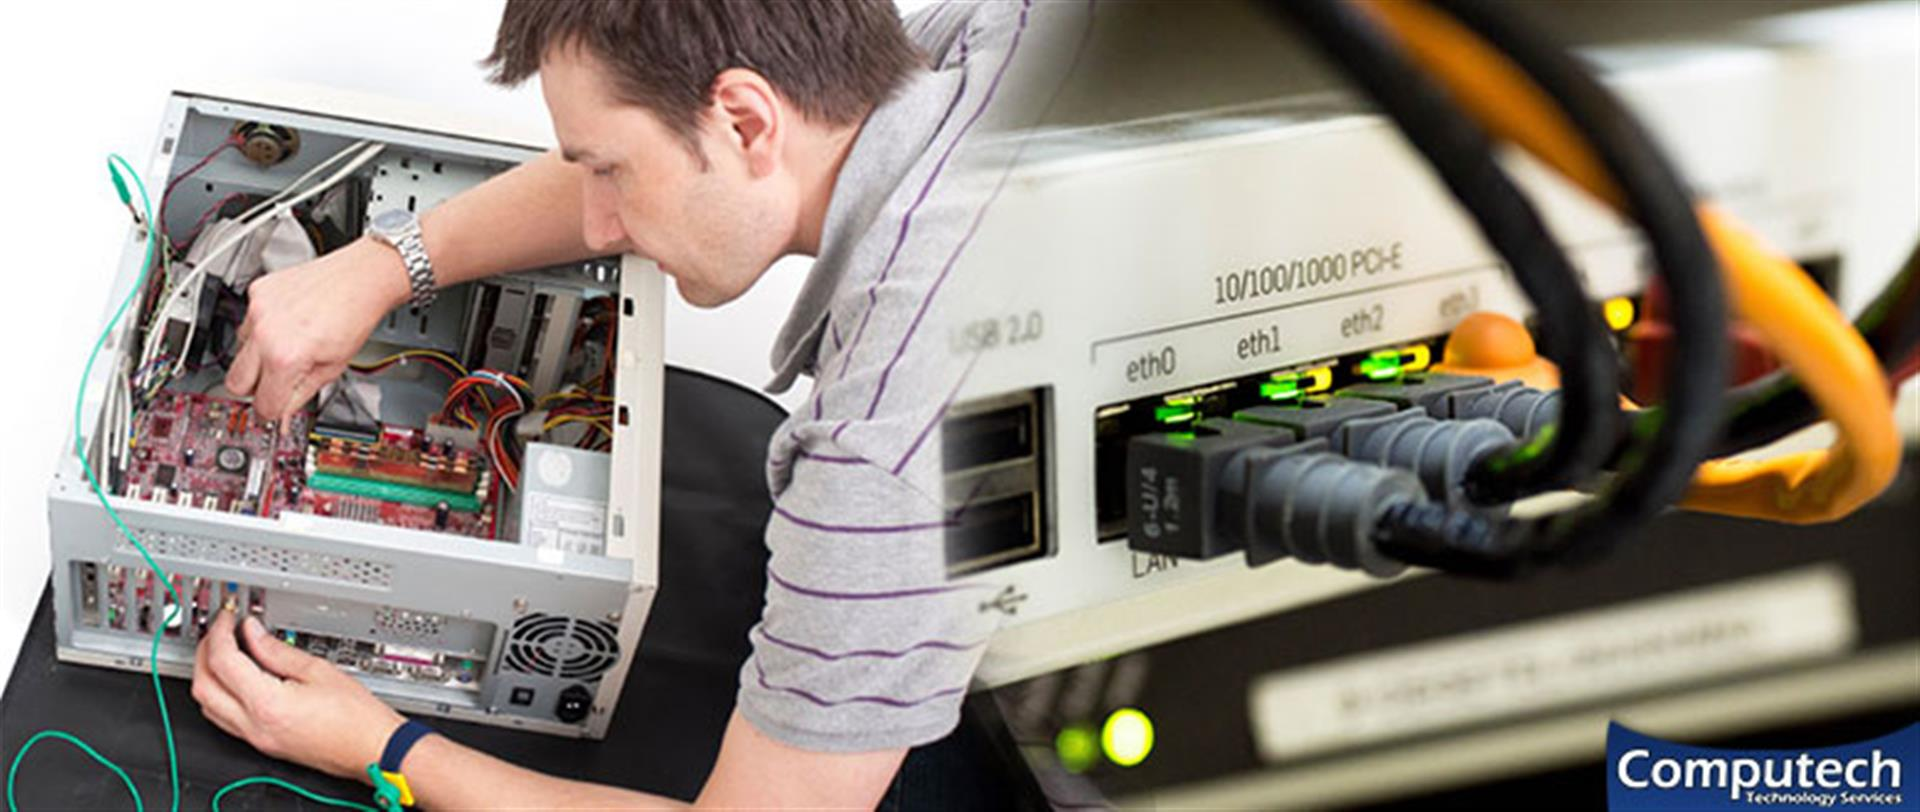 Braselton Georgia On Site Computer & Printer Repair, Networking, Voice & Data Cabling Solutions